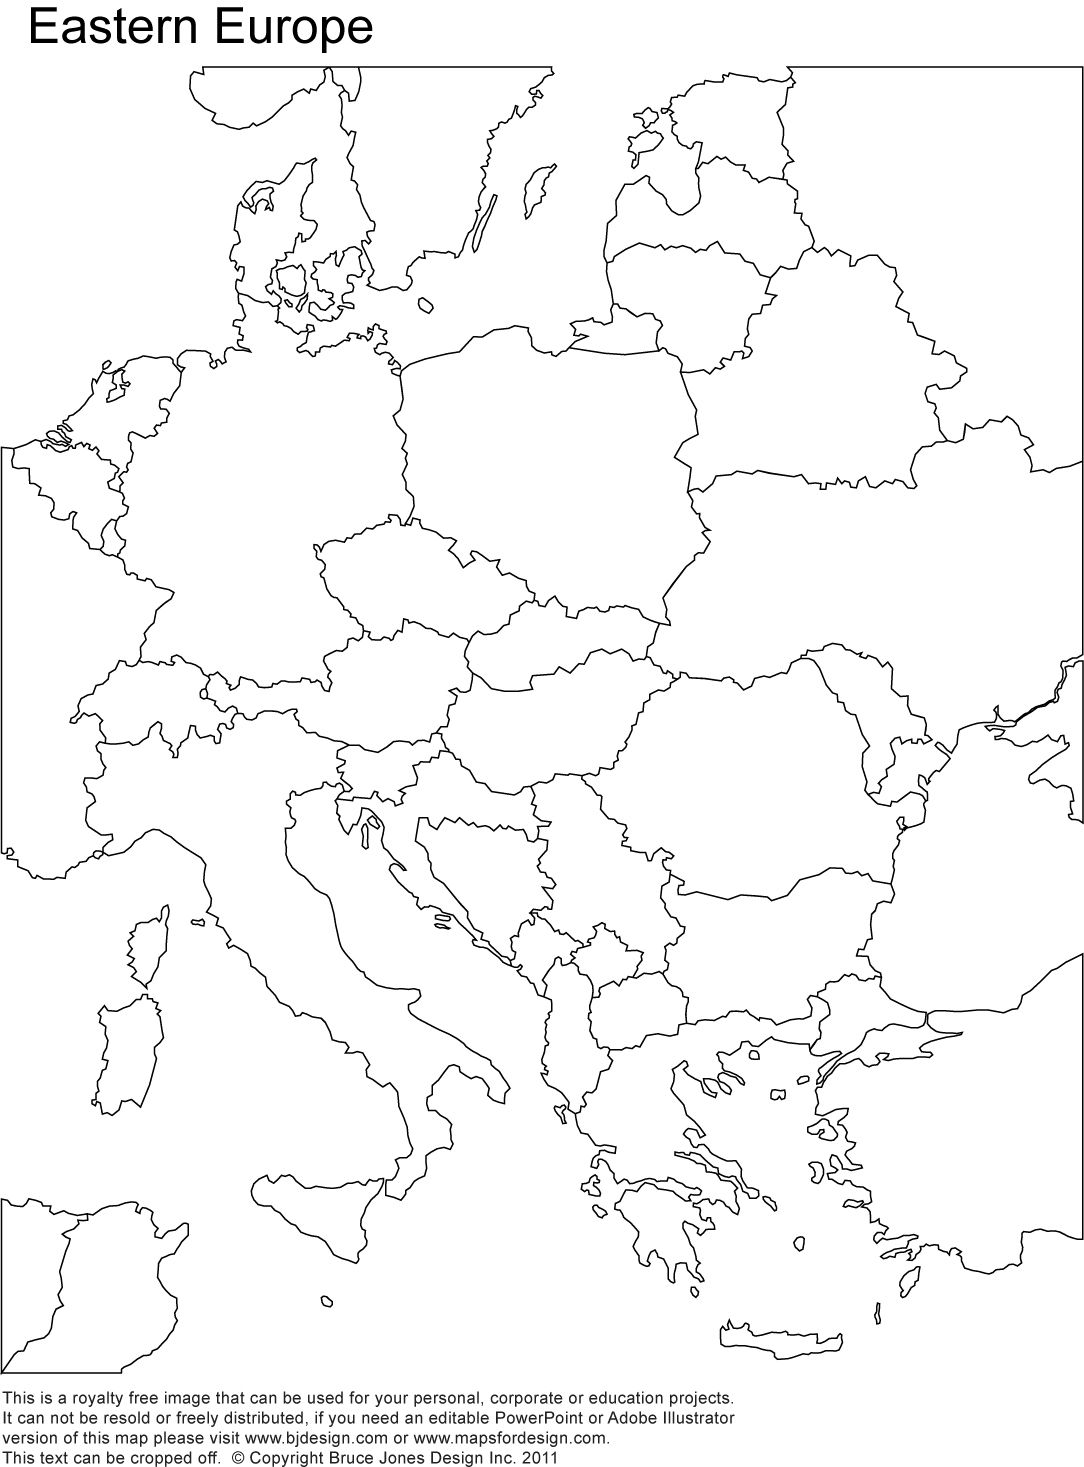 blank eastern europe map World Regional Printable, Blank Maps • Royalty Free,  | Europe